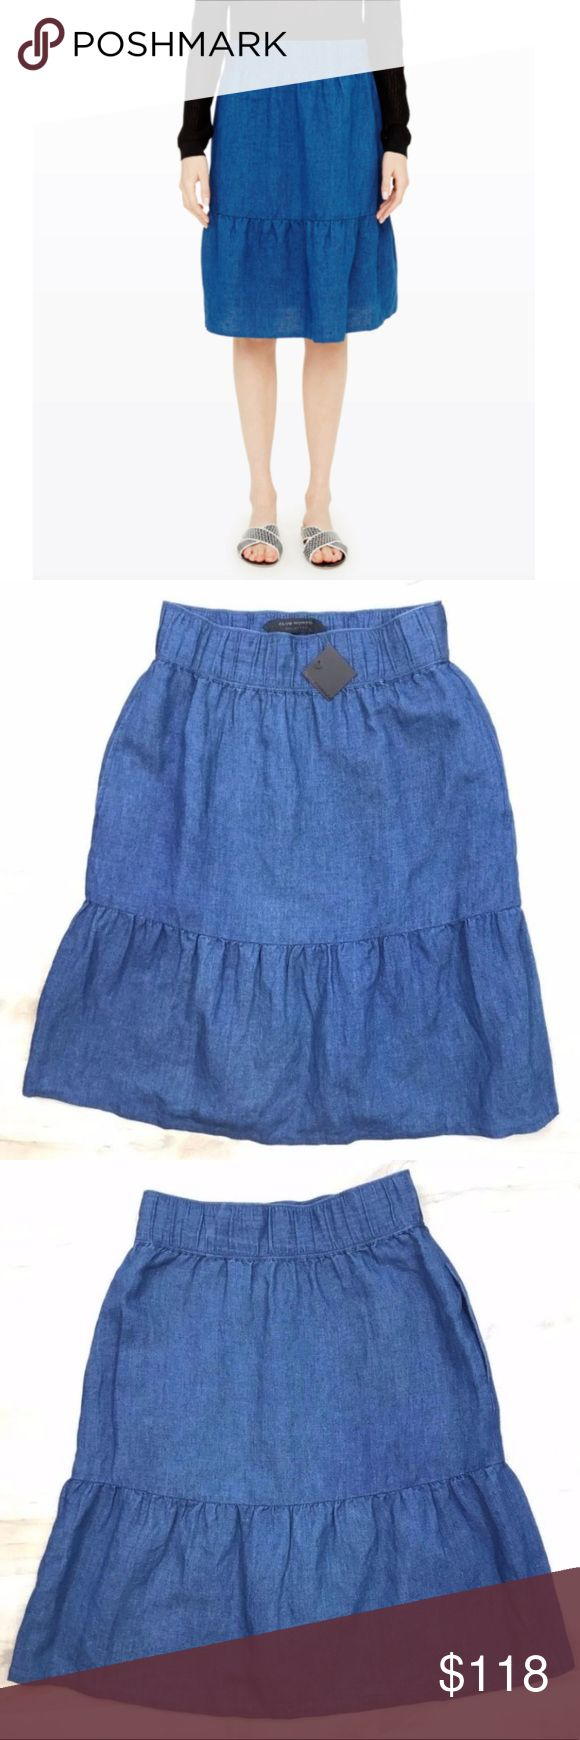 Club Monaco Collection Blue Velda Denim Skirt * Club Monaco Collection Women's Blue Velda Denim Skirt, Size 00 * New with tag  * A modern, urban take on the prairie skirt crafted from lightweight denim in a rich indigo hue.  * A Club Monaco Collection piece.  * Linen/cotton blend. Elastic waistband.  * Pleated, tiered skirt.  * Ruffle hem.  * Hidden pockets at side seams. * 54% Linen, 46% Cotton * MSRP $349.00   * Size 00 - Approximately 13 inches waist and 23 inches total length Club Monaco…